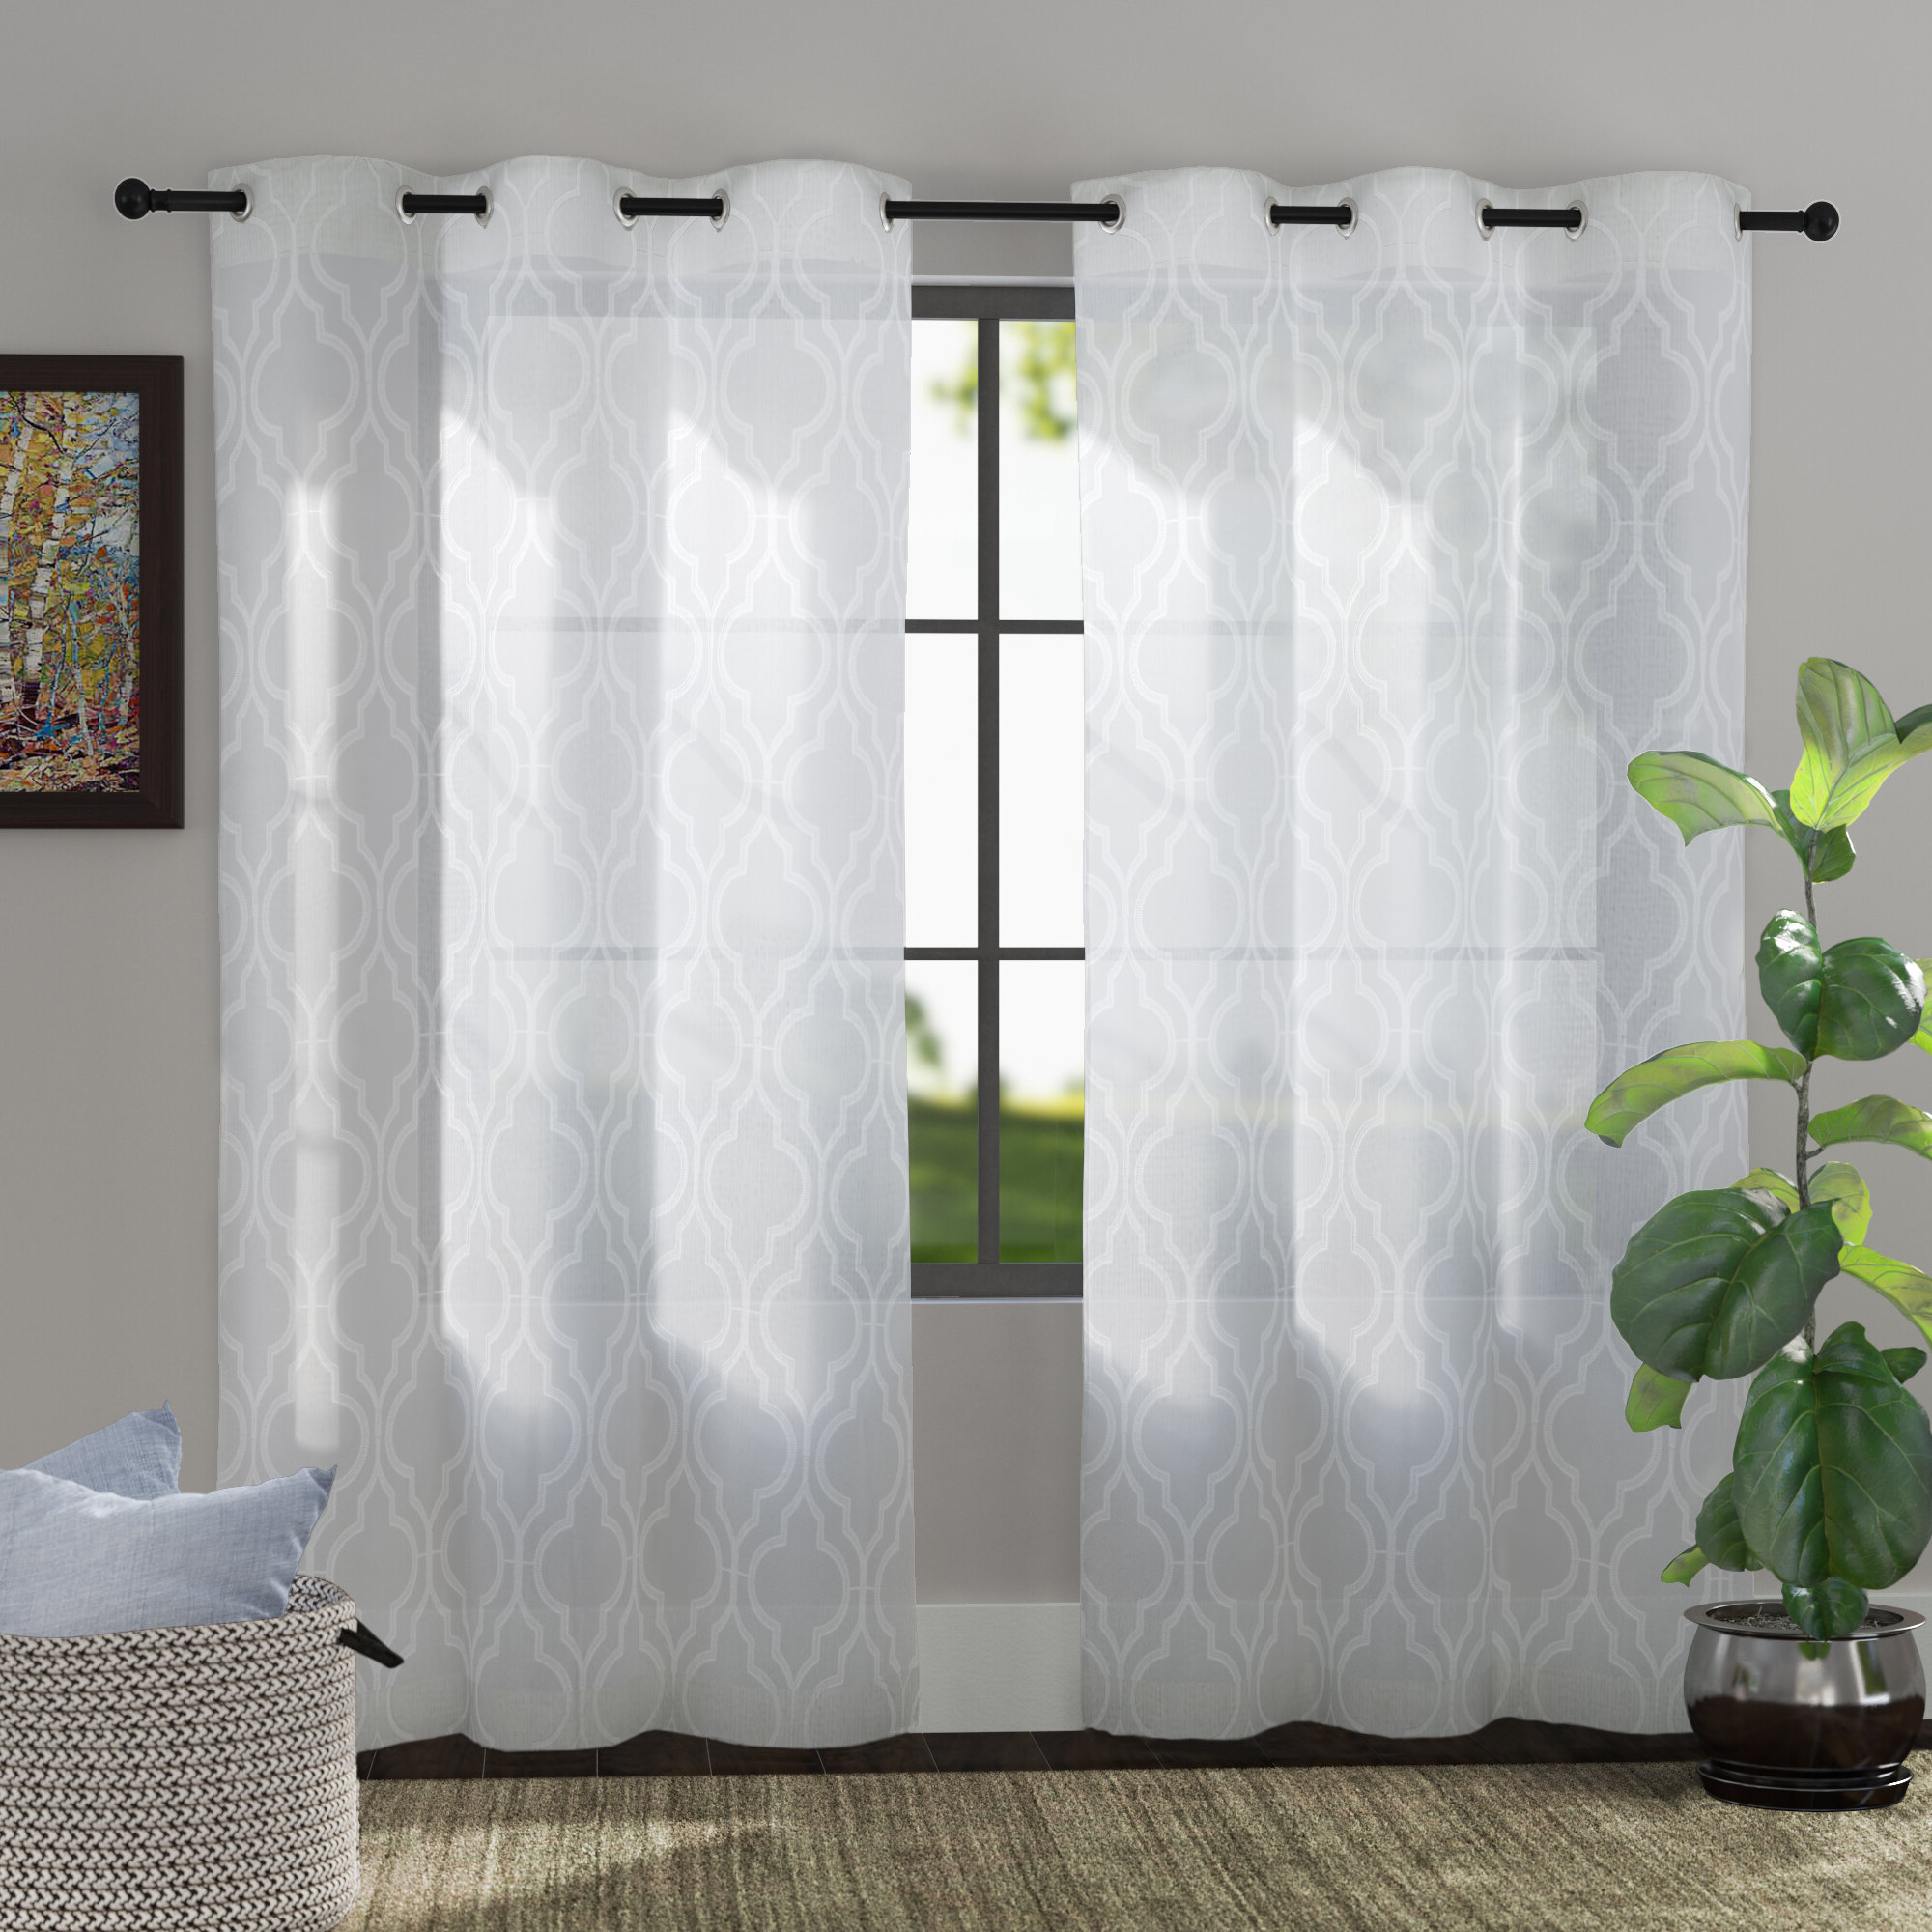 Well Known Edward Moroccan Pattern Room Darkening Curtain Panel Pairs Within Edward Trellis Curtains (View 13 of 20)